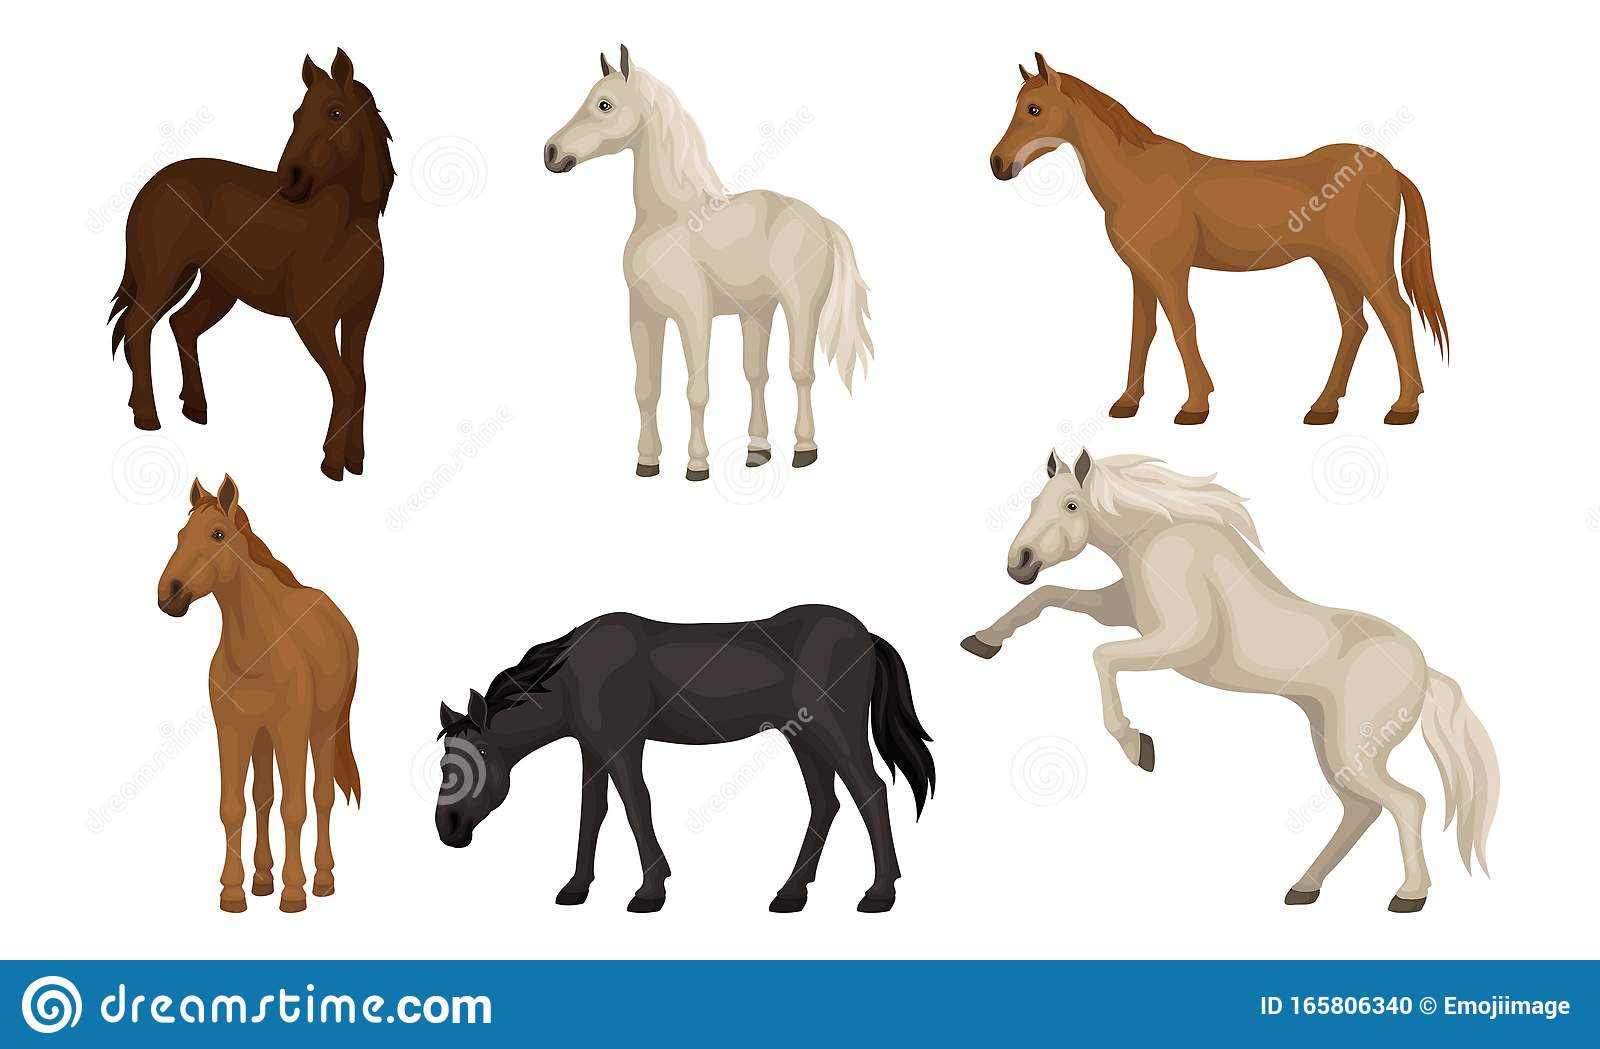 Horse Breeds Set Beautiful Horses Of Different Colors Vector Illustration Stock Vector Illustration Of Drawing Horse 165806340